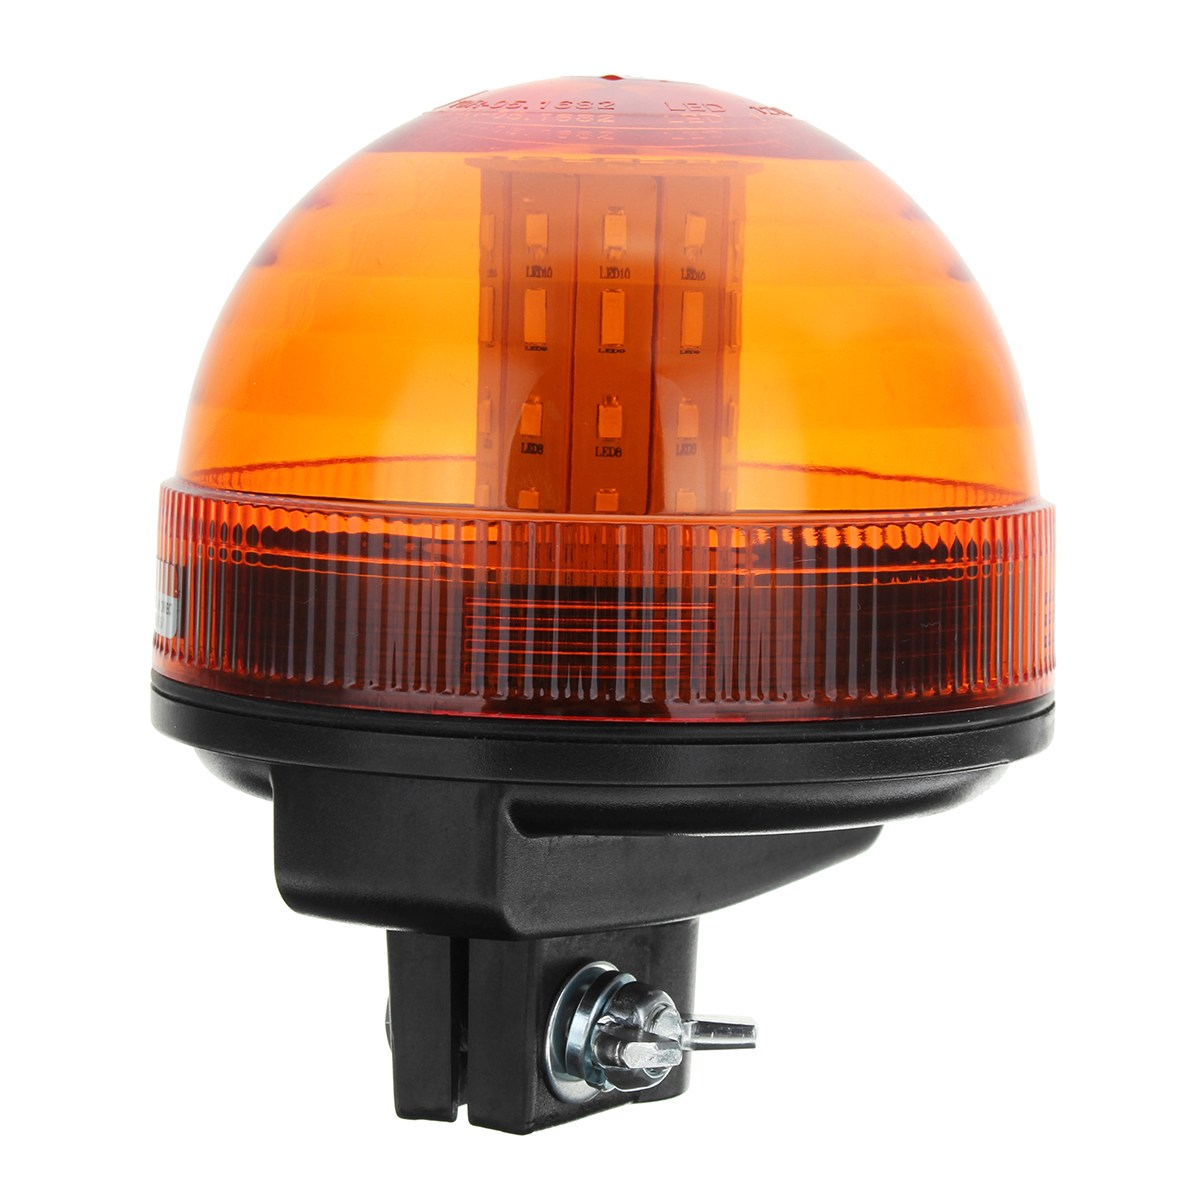 Safurance 40 LED Rotating Flashing Amber Beacon Flexible Tractor Warning Light Roadway Safety safurance led rotating flashing amber beacon flexible tractor warning light 12v 24v roadway safety